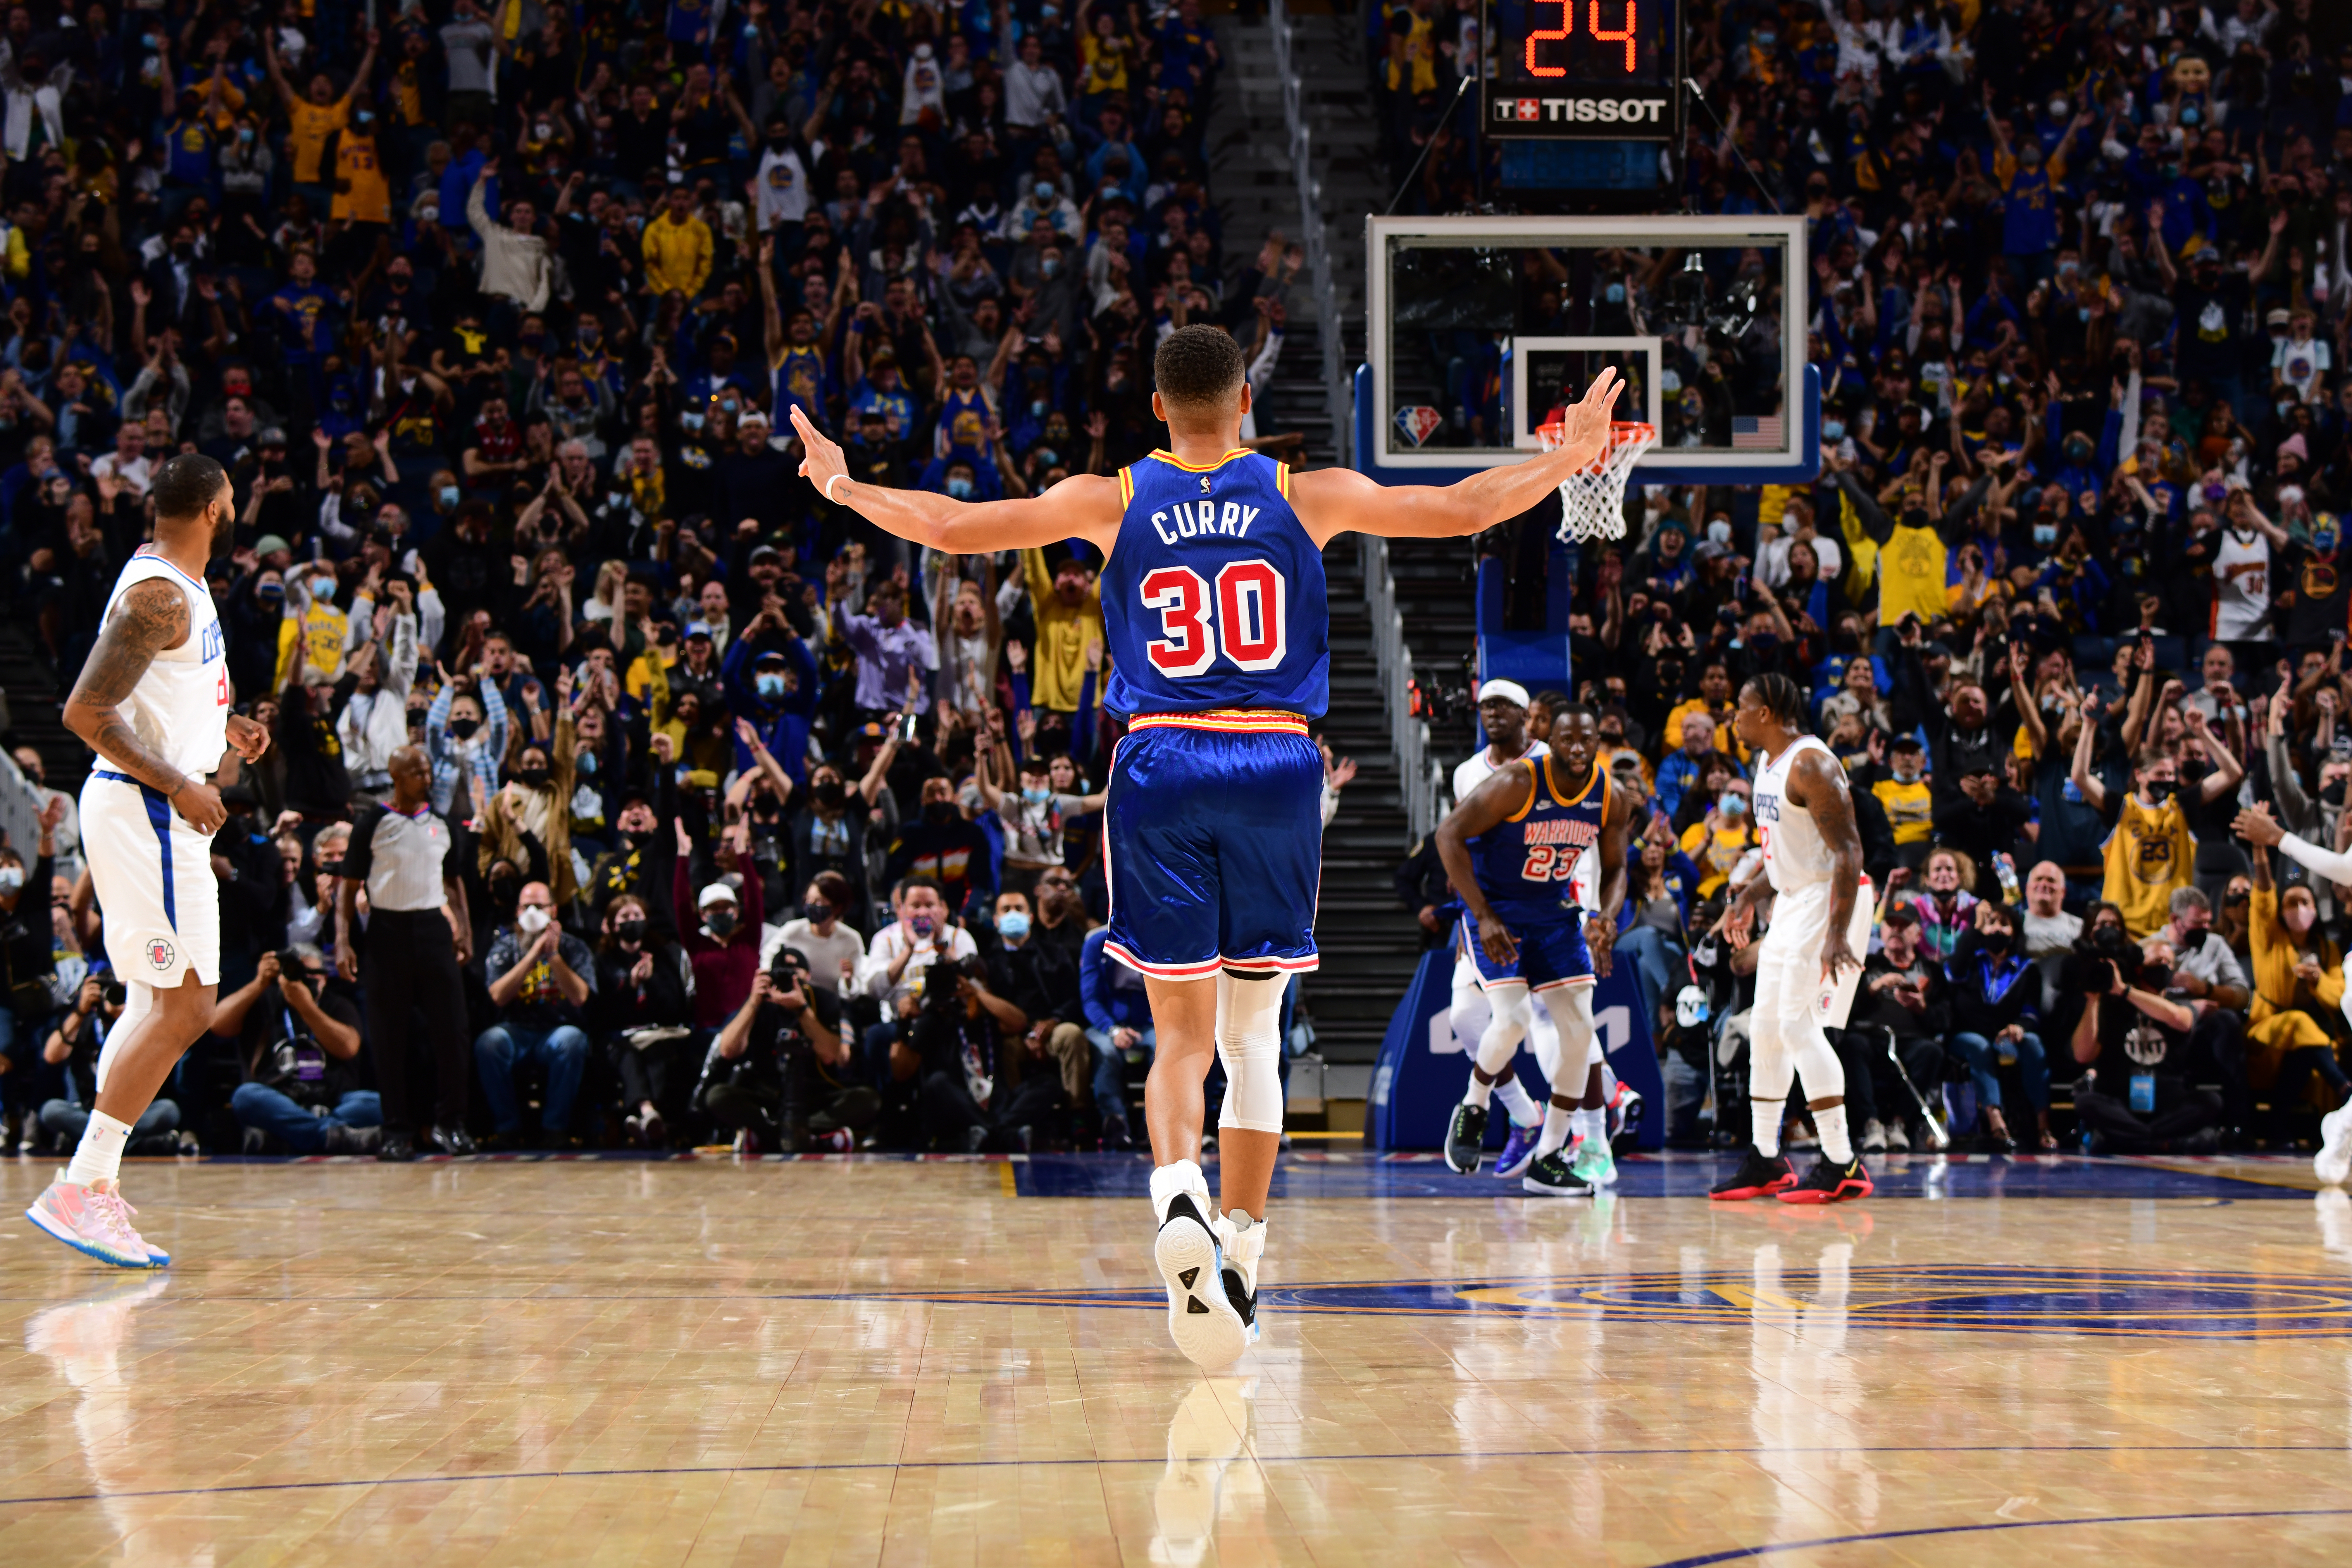 Stephen Curry #30 of the Golden State Warriors celebrates during the game against the LA Clippers on October 21, 2021 at Chase Center in San Francisco, California.